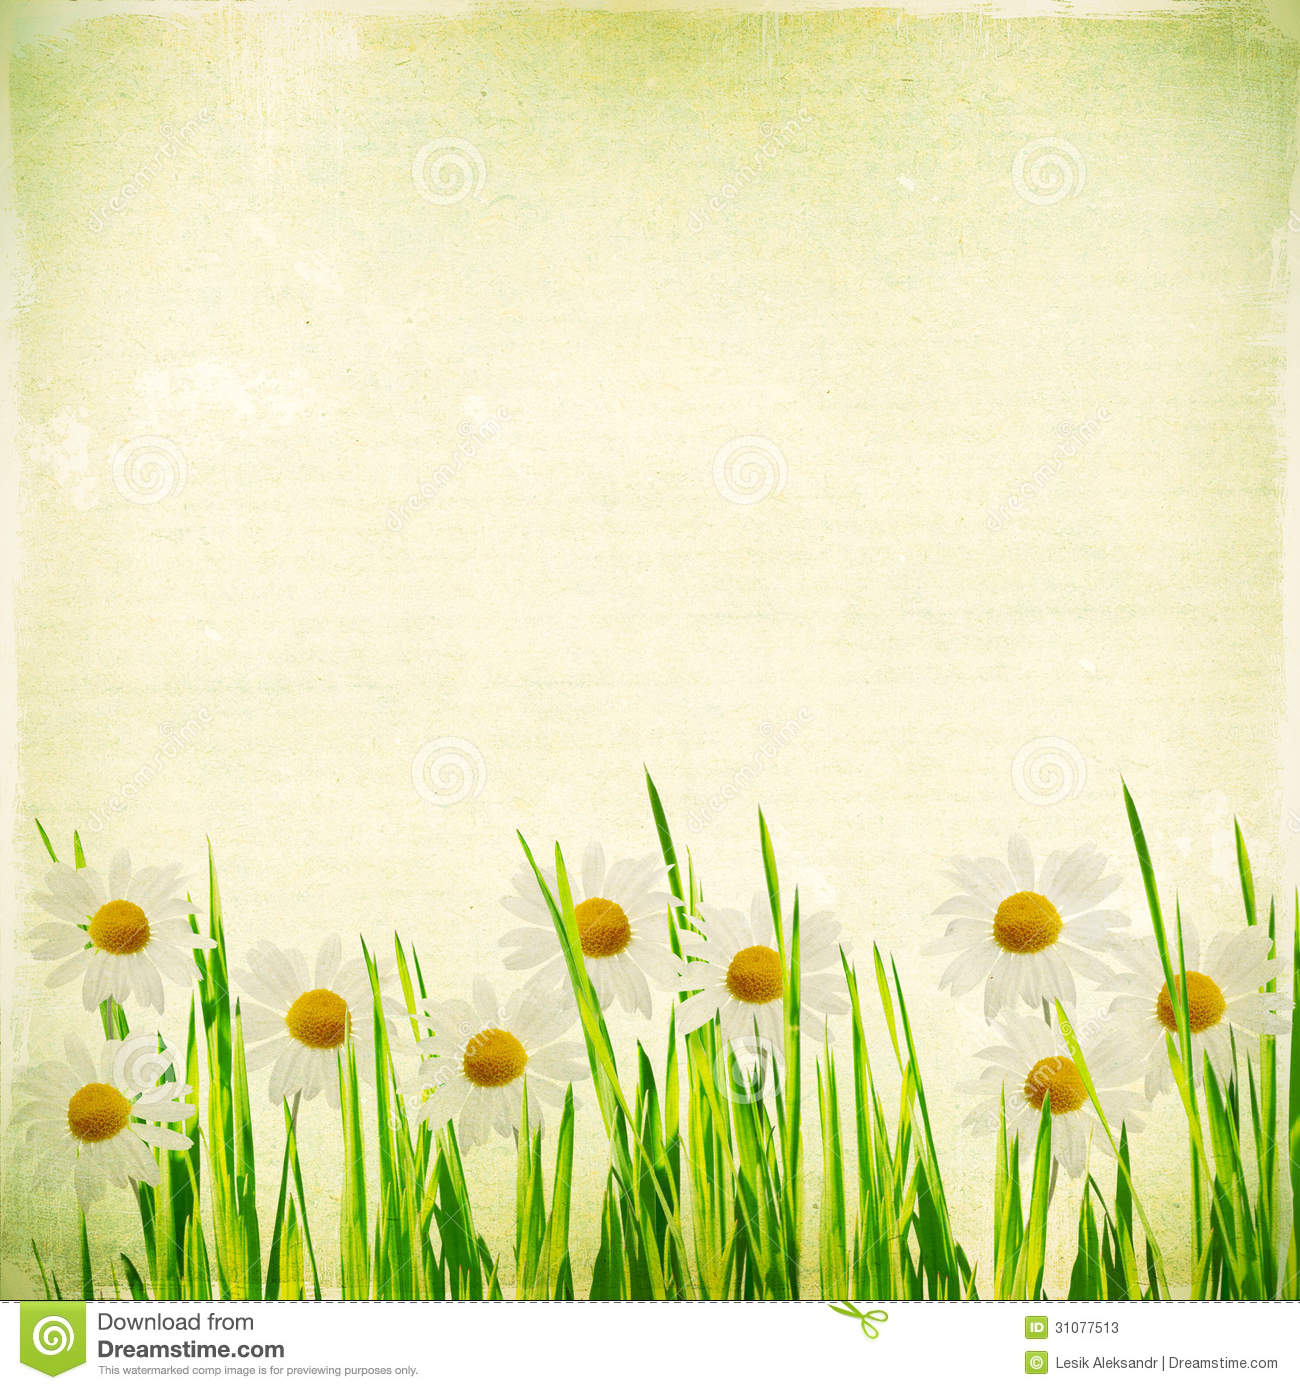 Vintage Floral Background With Daisies In Green Grass On A